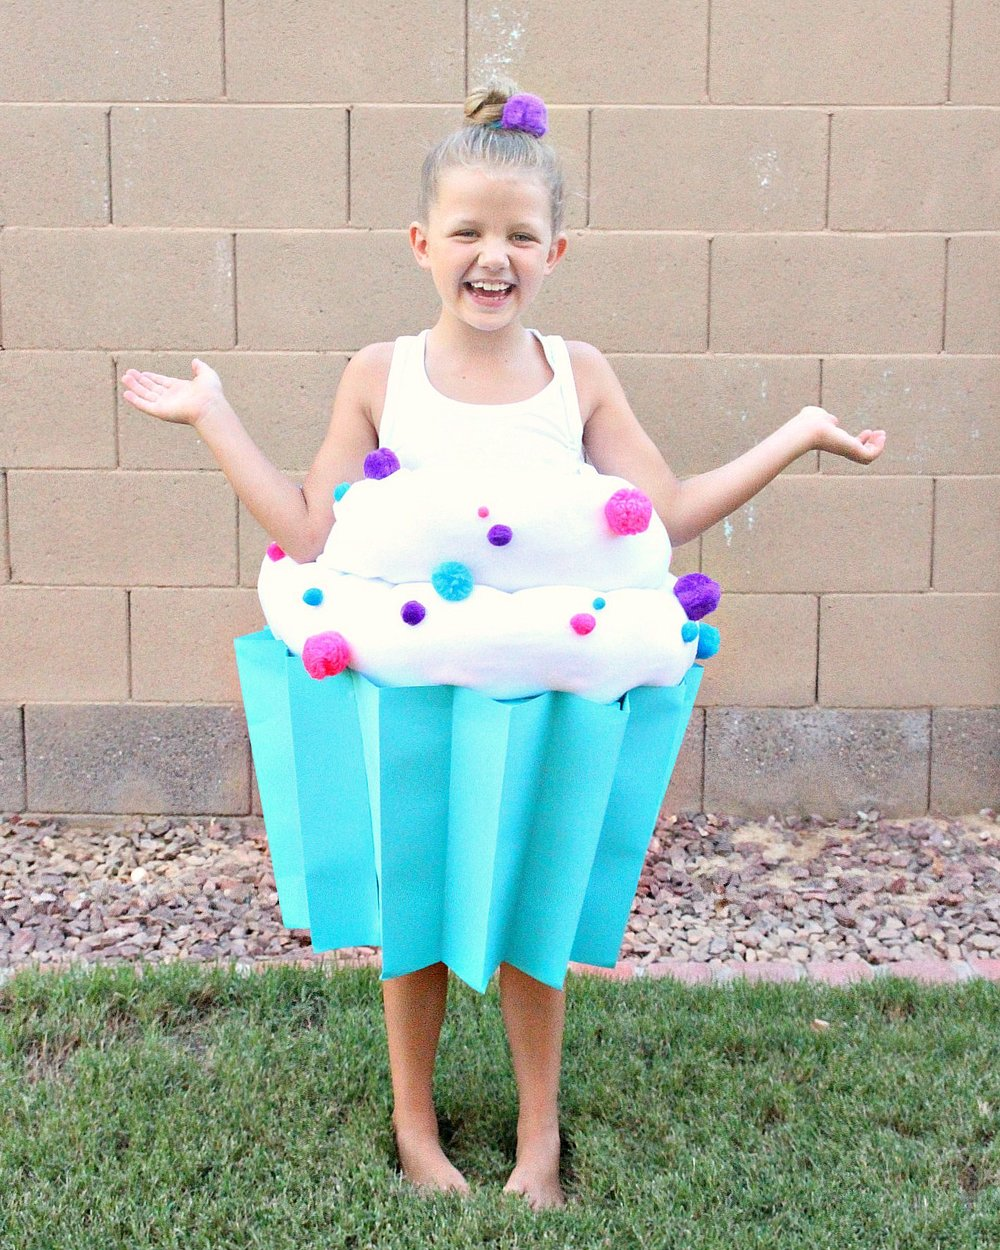 Country Living added this costume to their list of Best Halloween Costumes for Kids of all Ages!